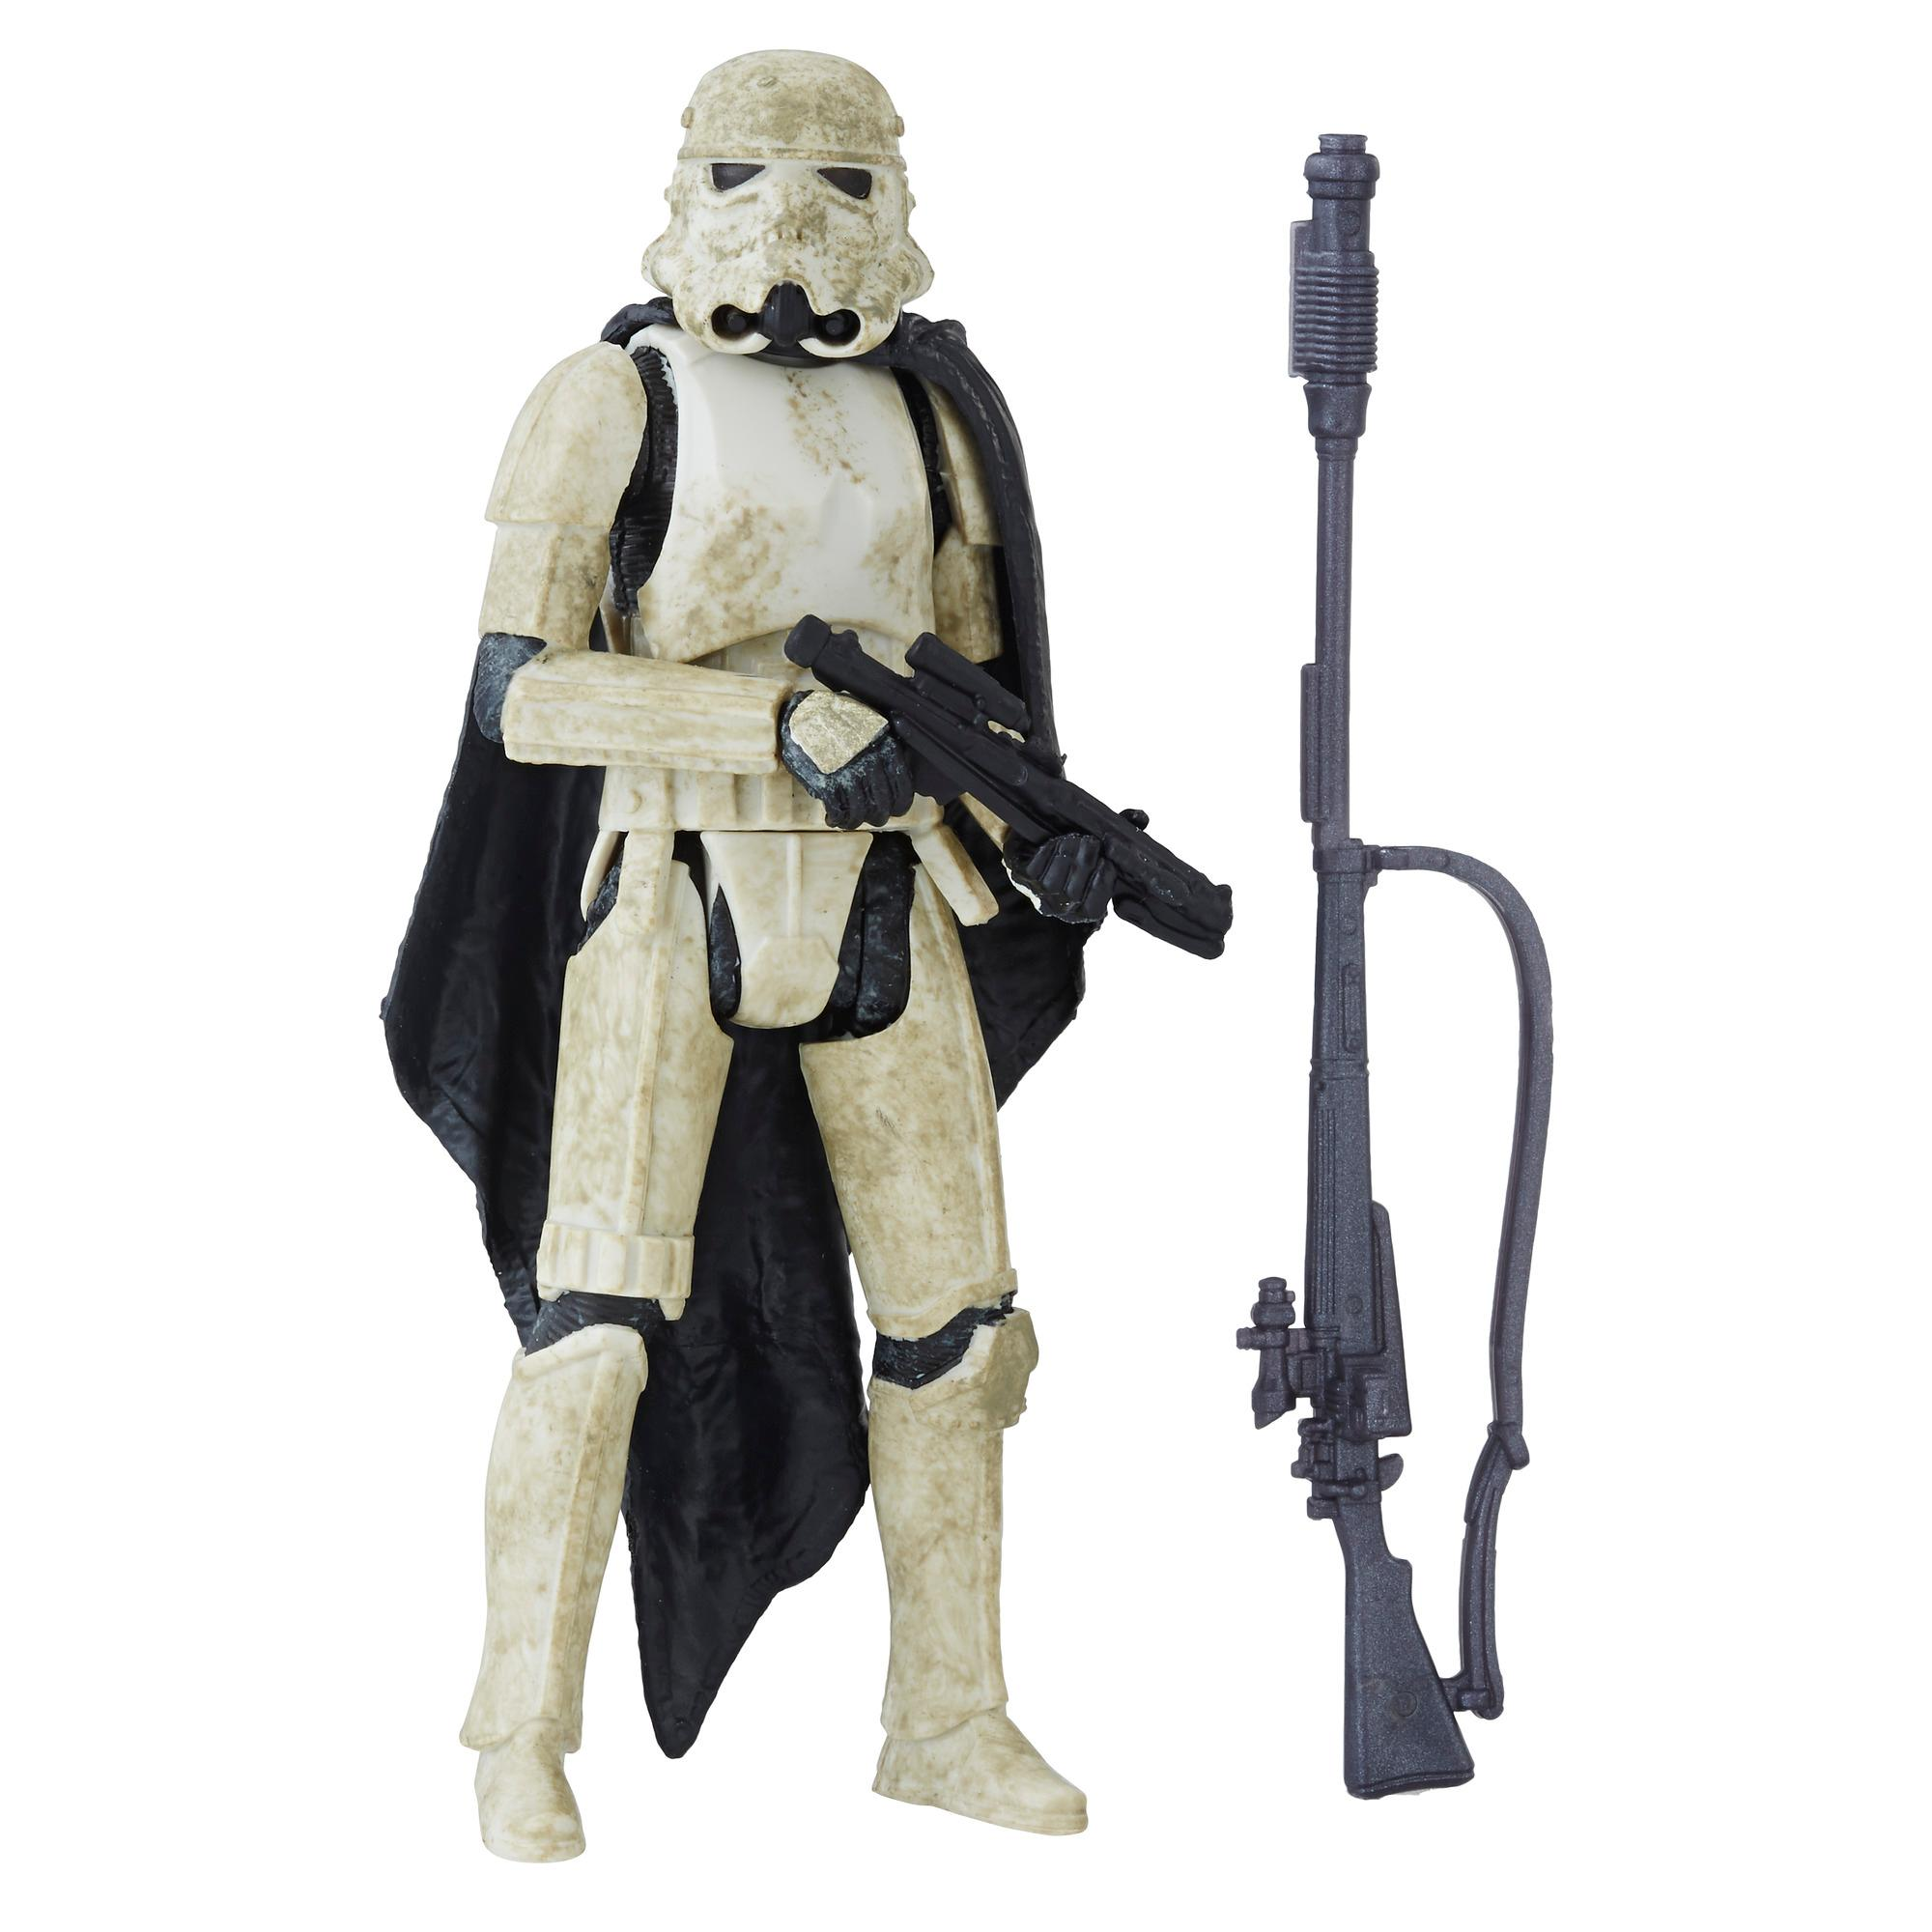 Star Wars Force Link 2.0 Stormtrooper (Mimban) Figure